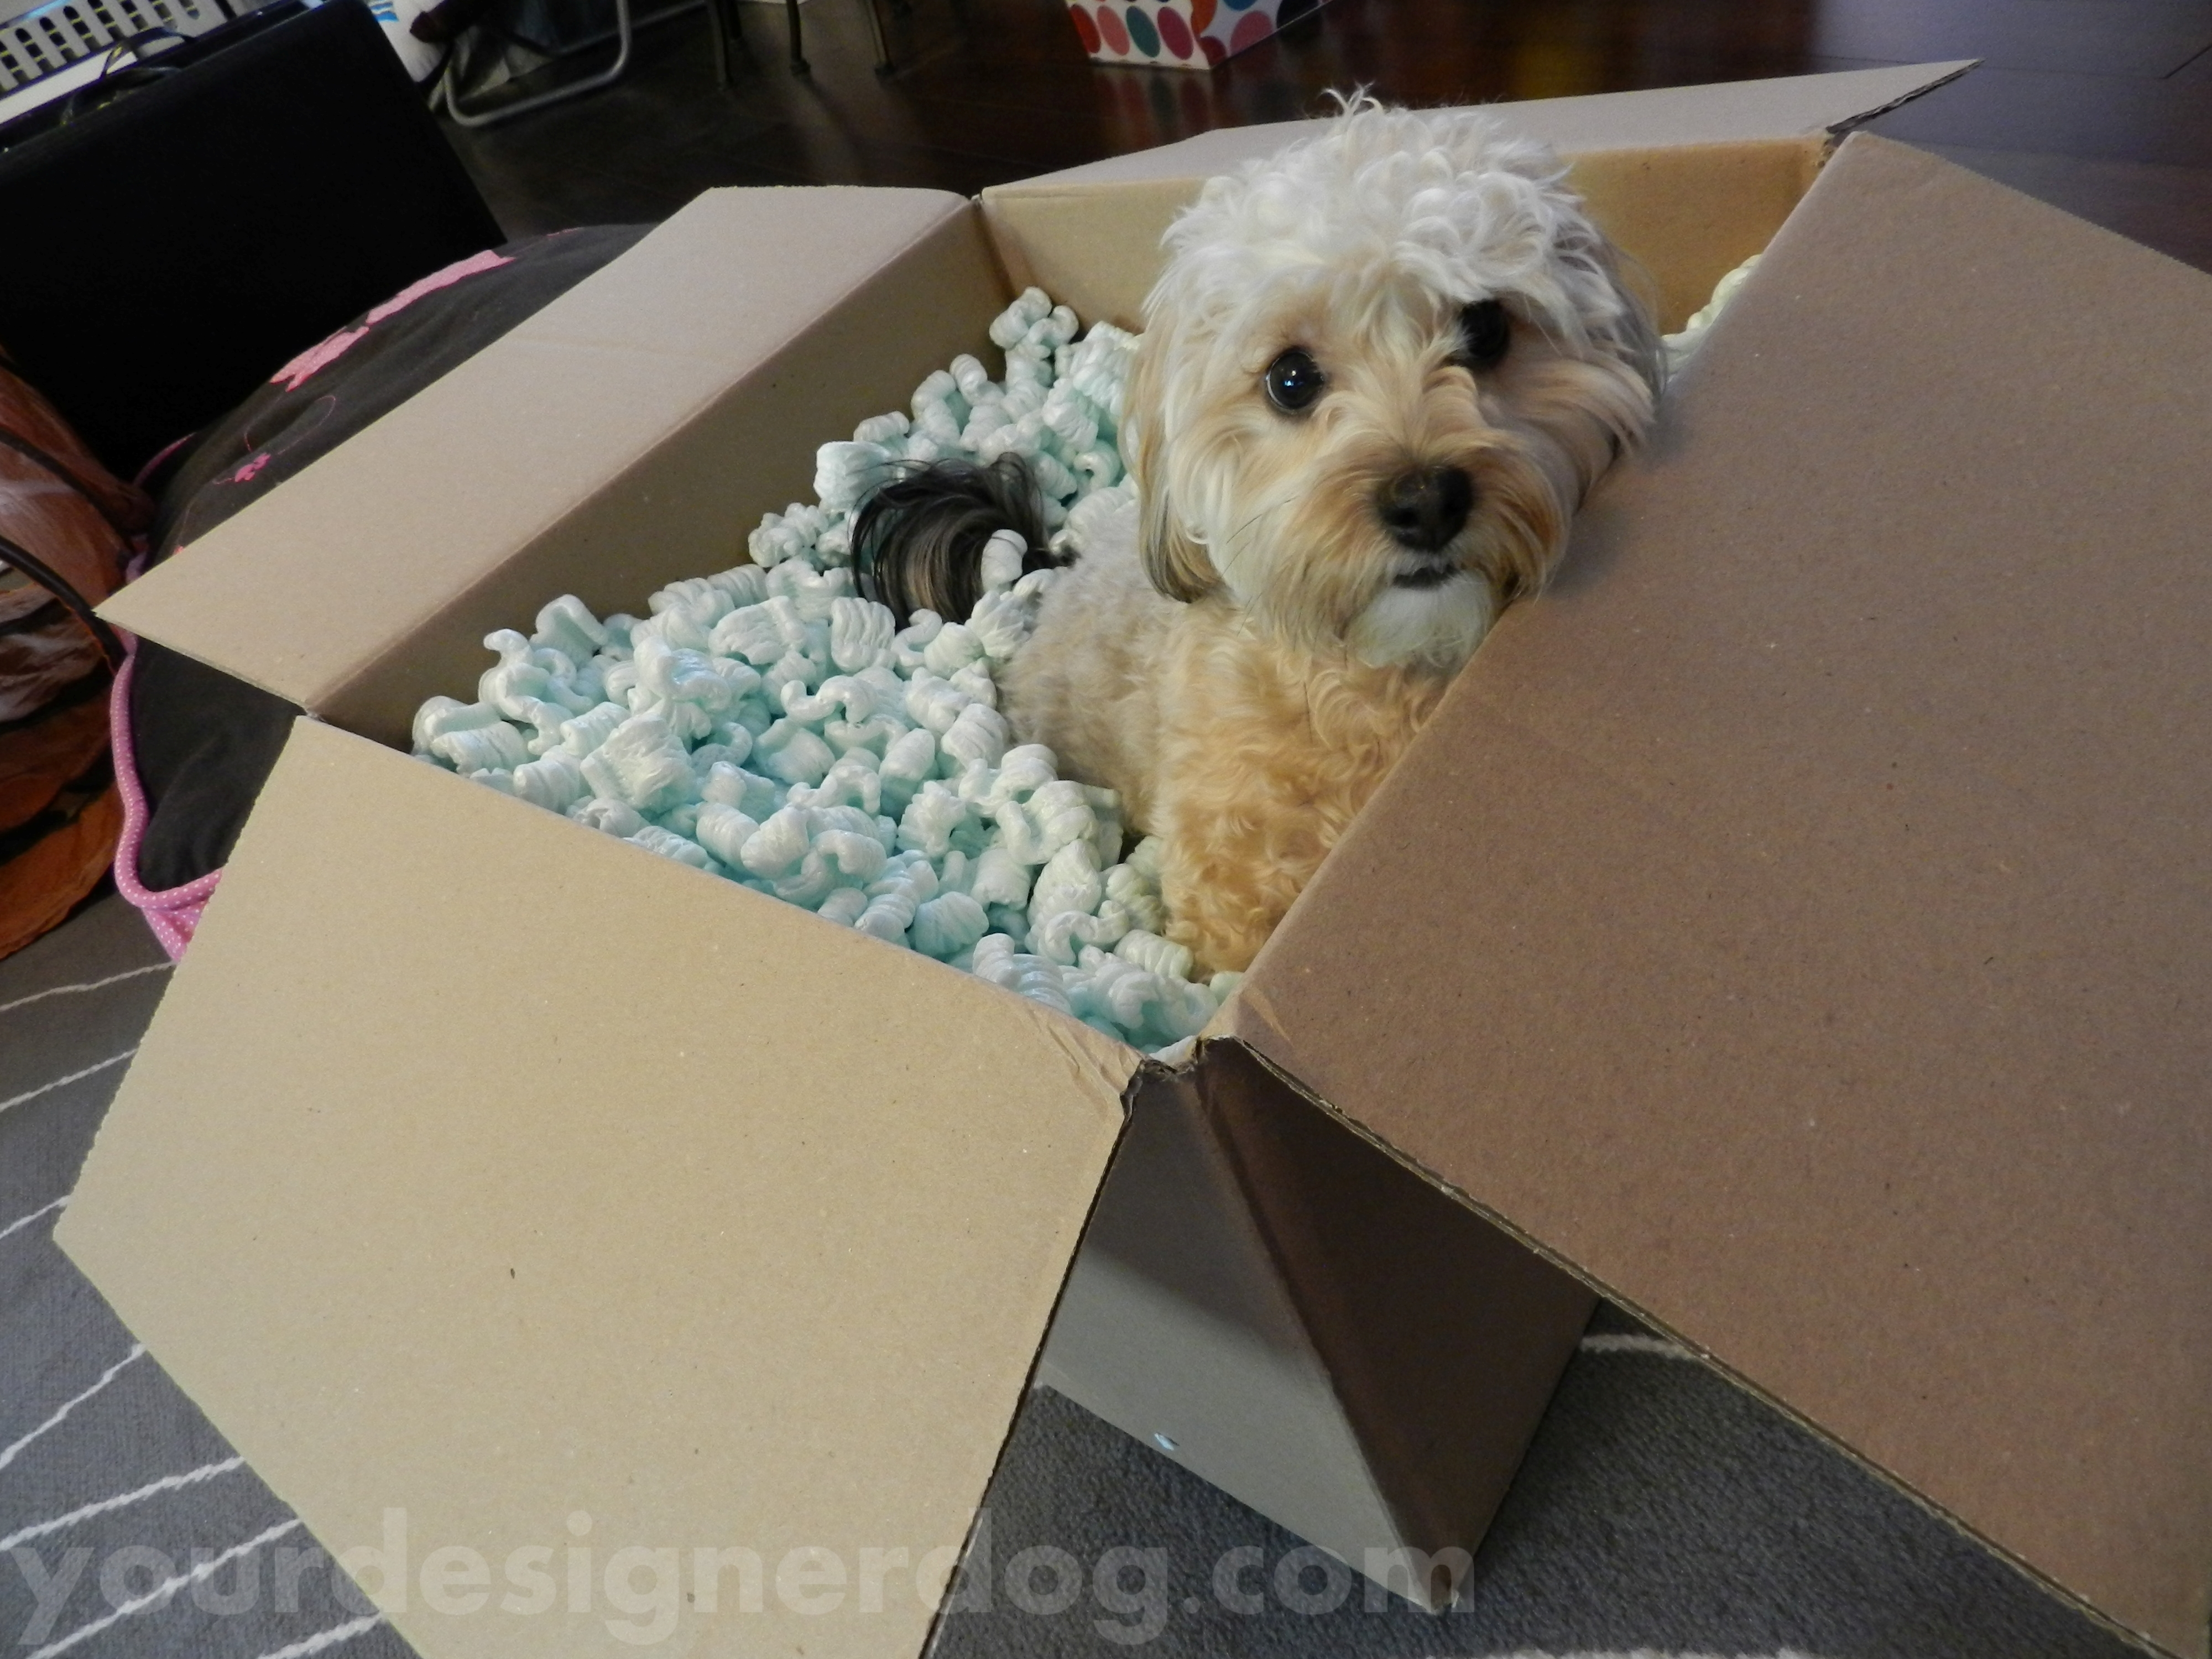 We're Moving! Meet us at www.yourdesignerdogblog.com!